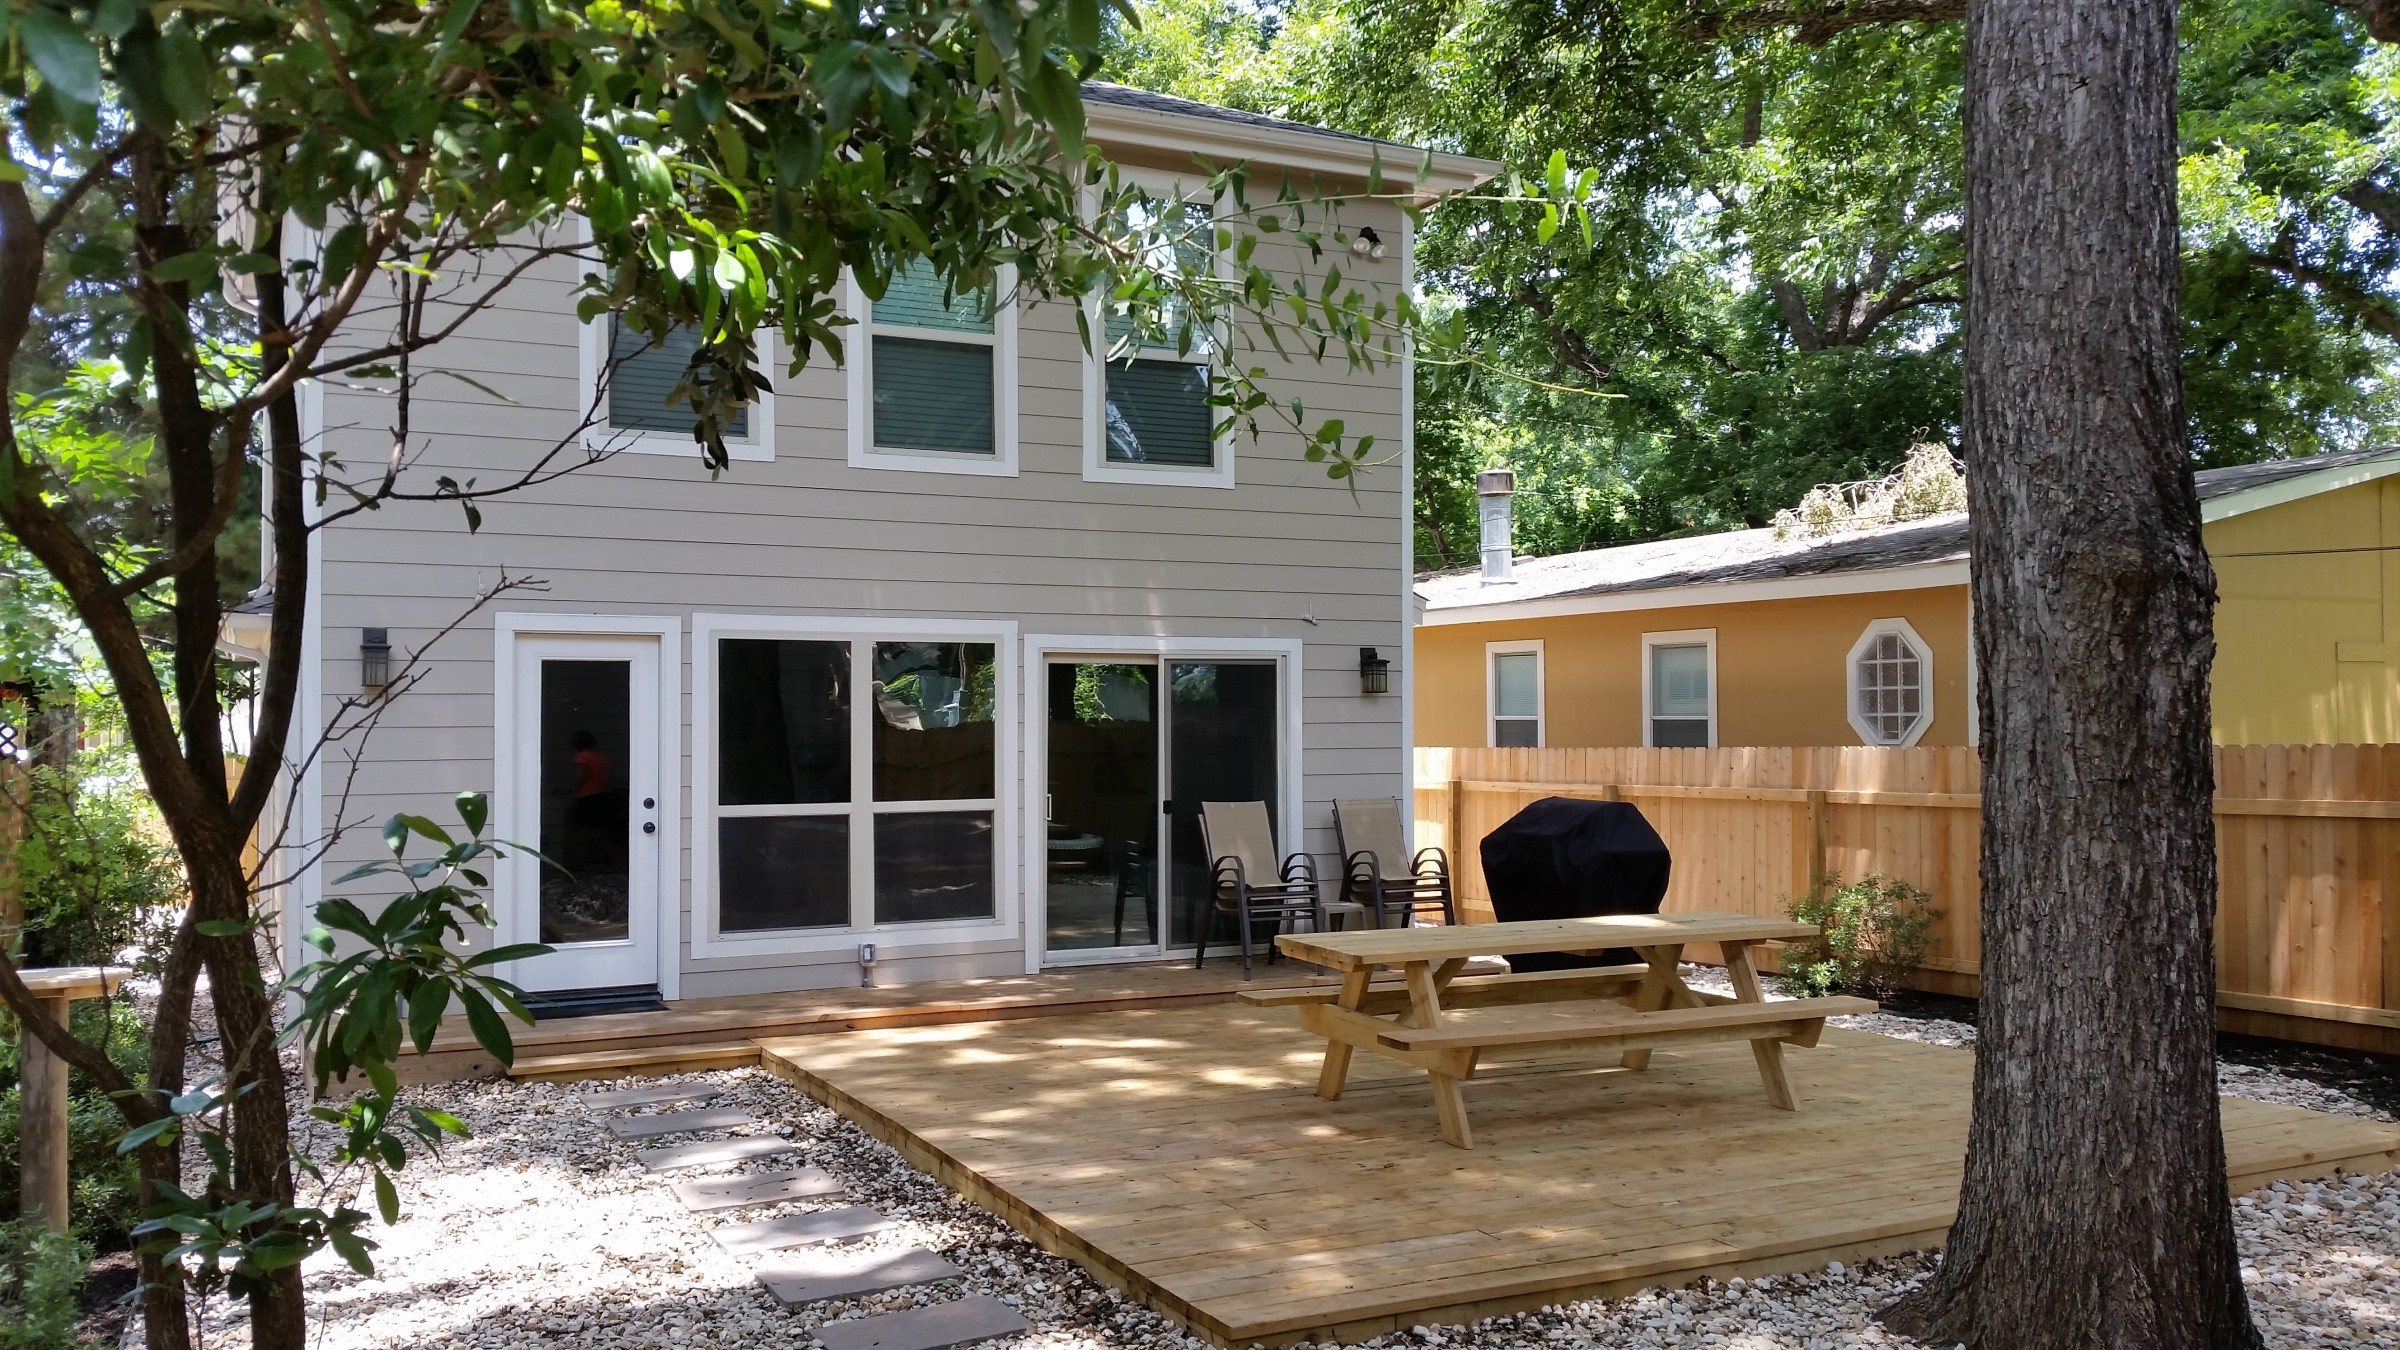 4BR35BA House with Separate Studio Austin RA